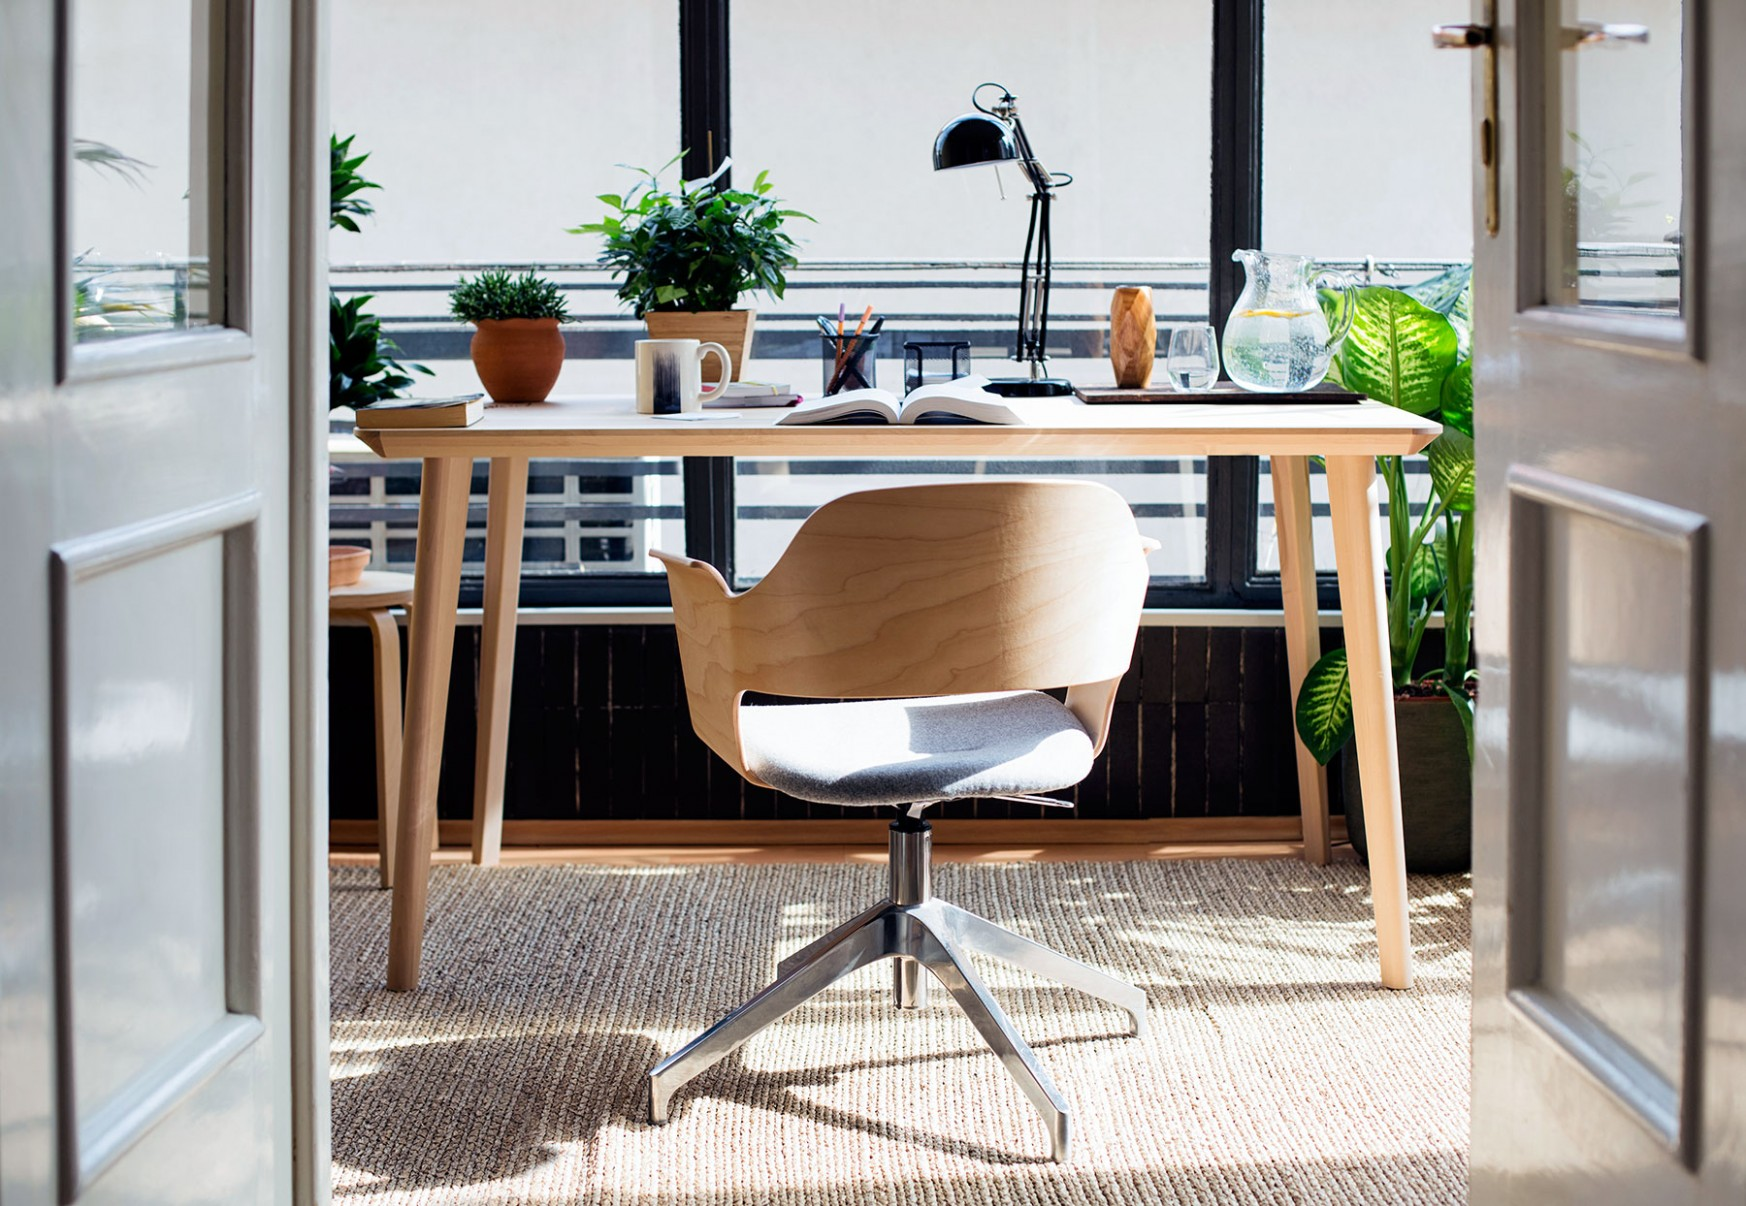 12 Home Office Ideas That Will Make You Want to Work All Day  - Home Office Design Ideas 2021